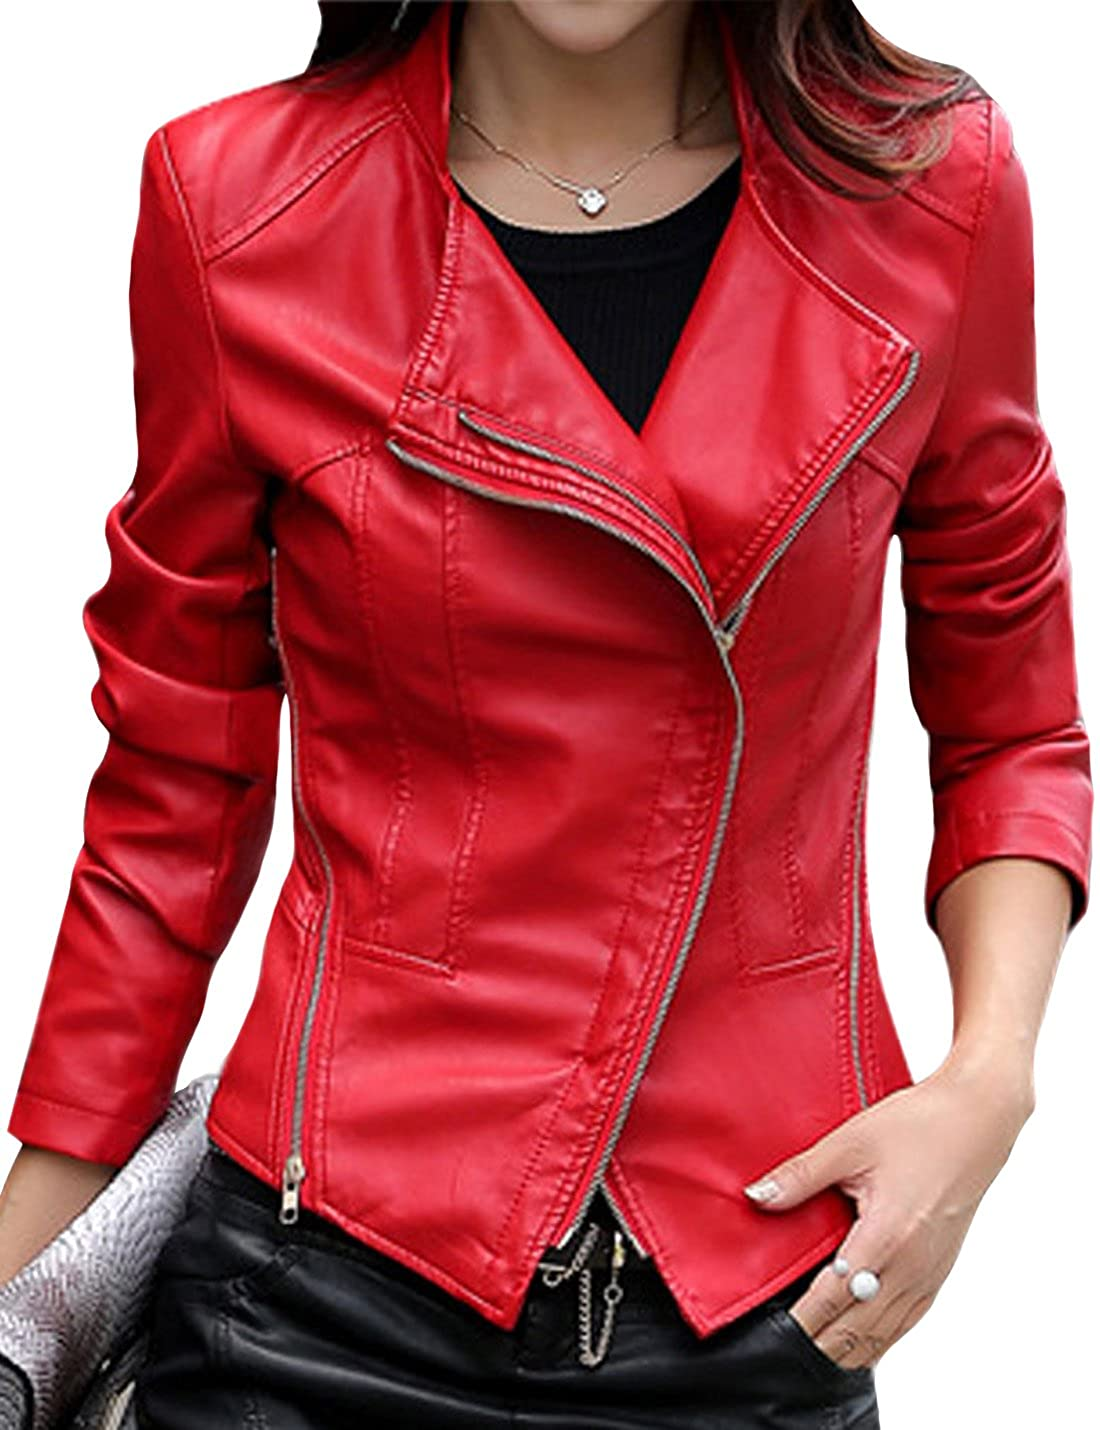 Tanming Womens Short Slim Slant Zip Faux Leather Moto Jacket Multiple Colors